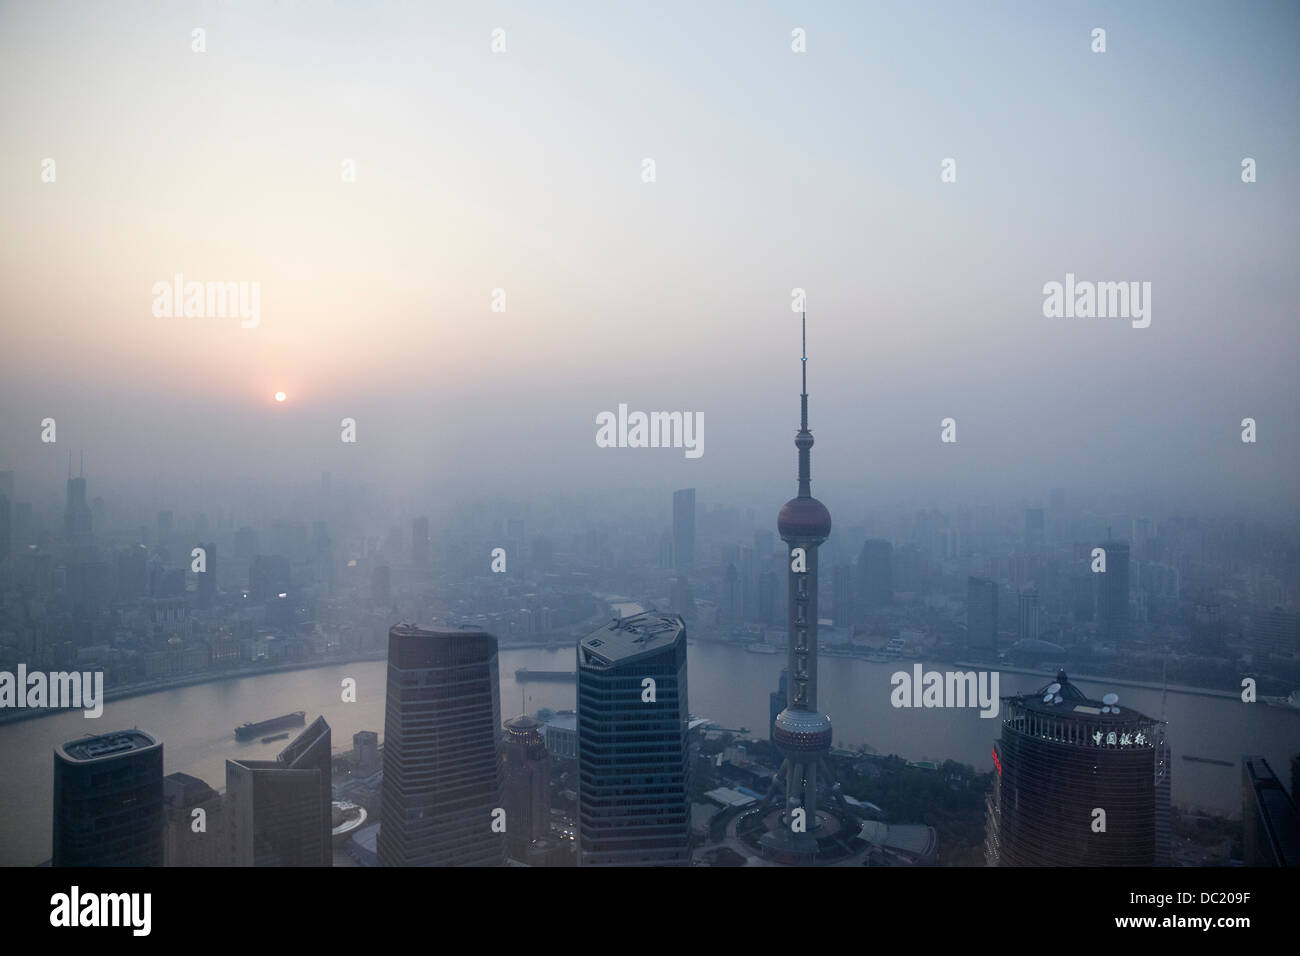 Oriental Pearl Tower and Huangpu River over misty cityscape, Shanghai, China - Stock Image